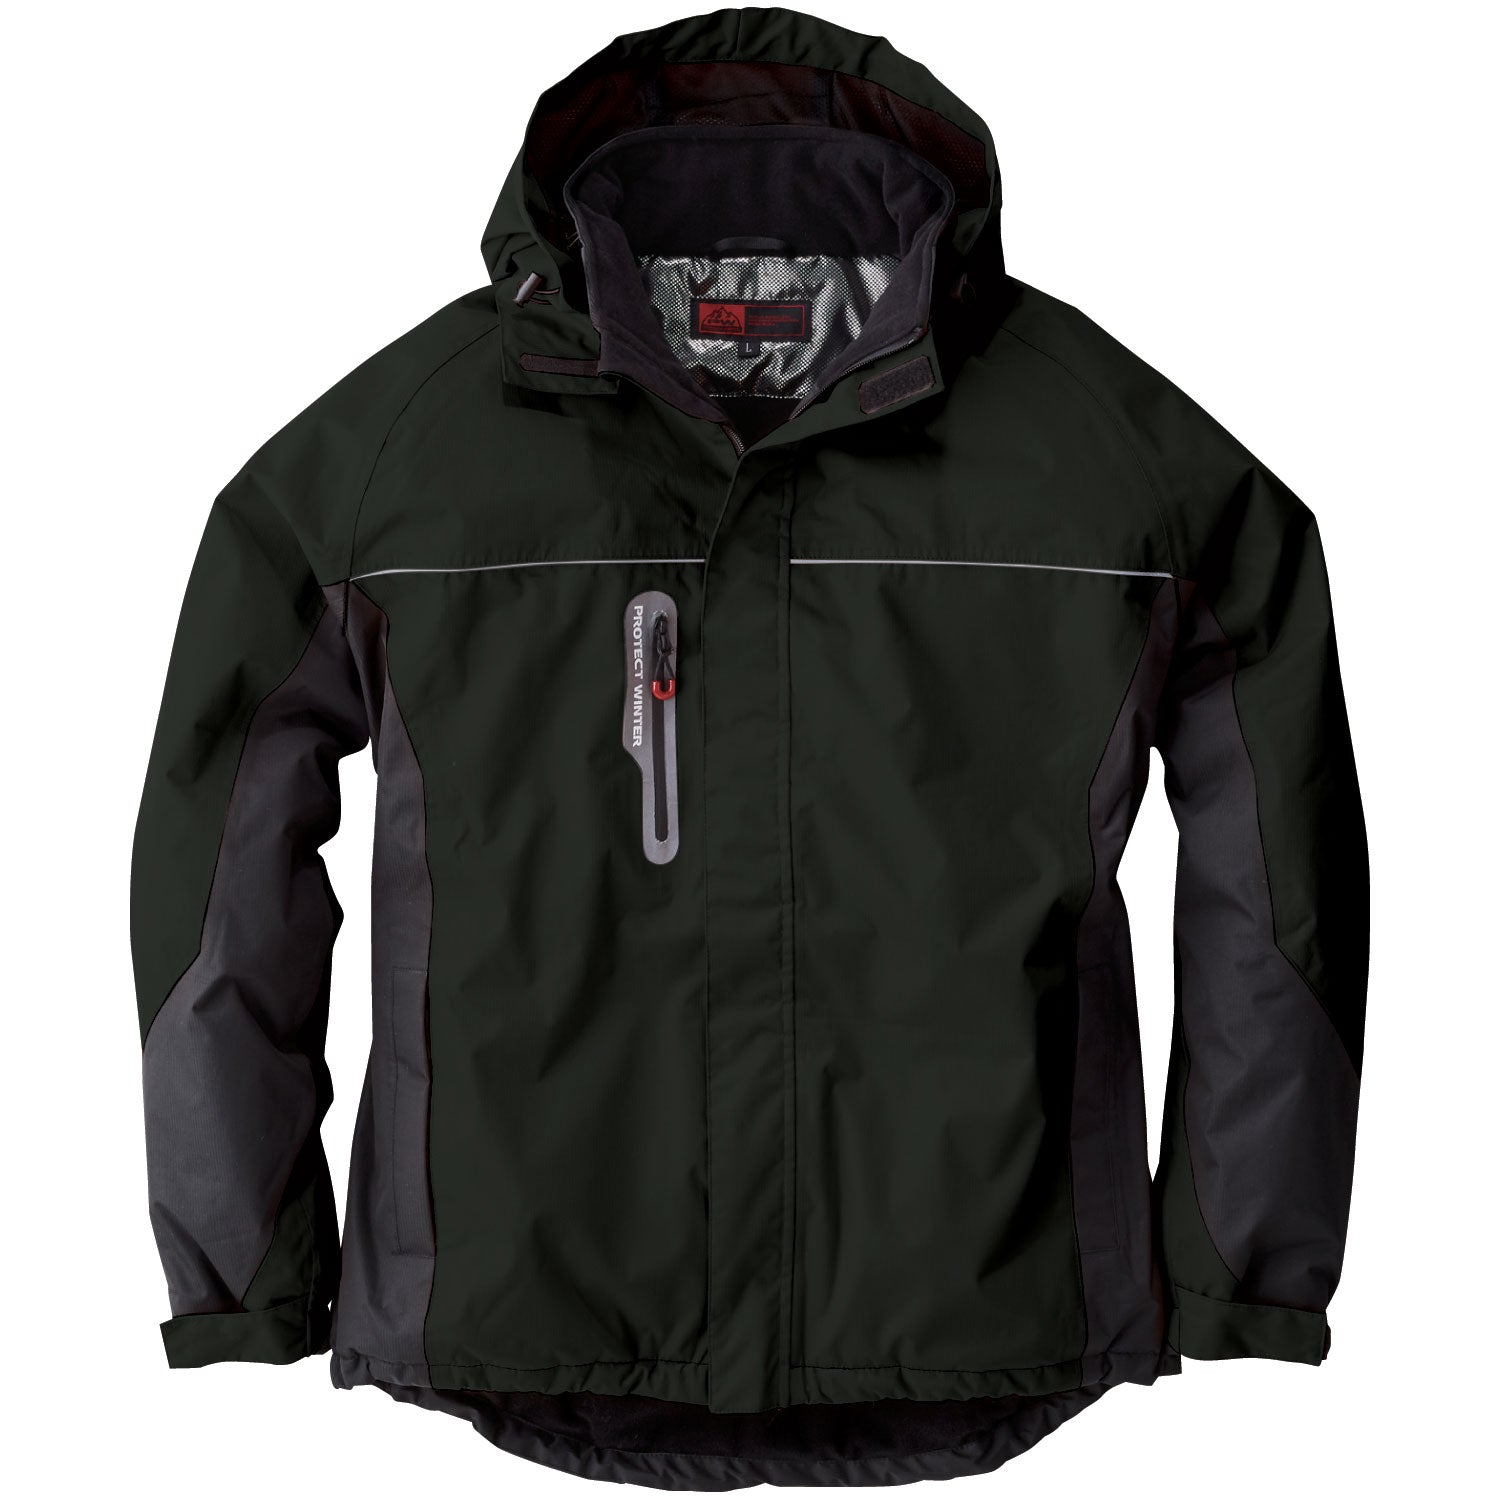 SOWA 44403 Waterproof and Cold Protection Blouson